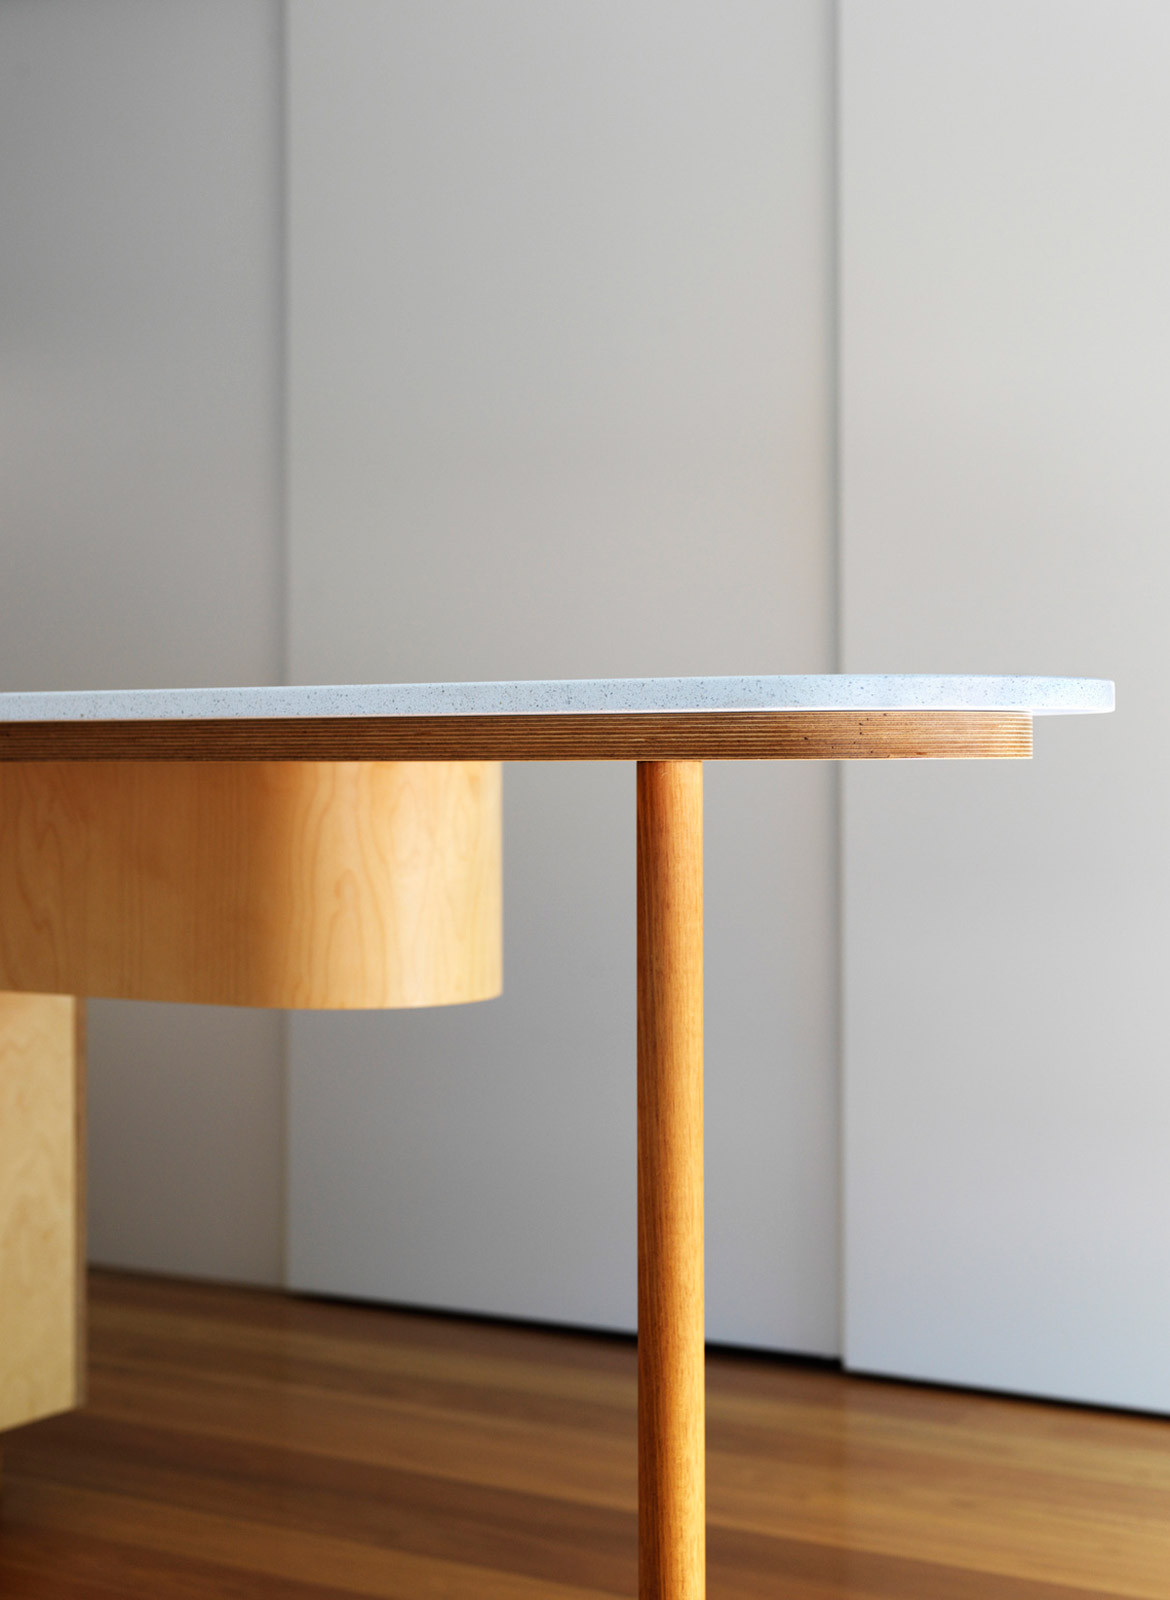 Kondo Condo Downie North CC Felipe Neves kitchen bench details material structure